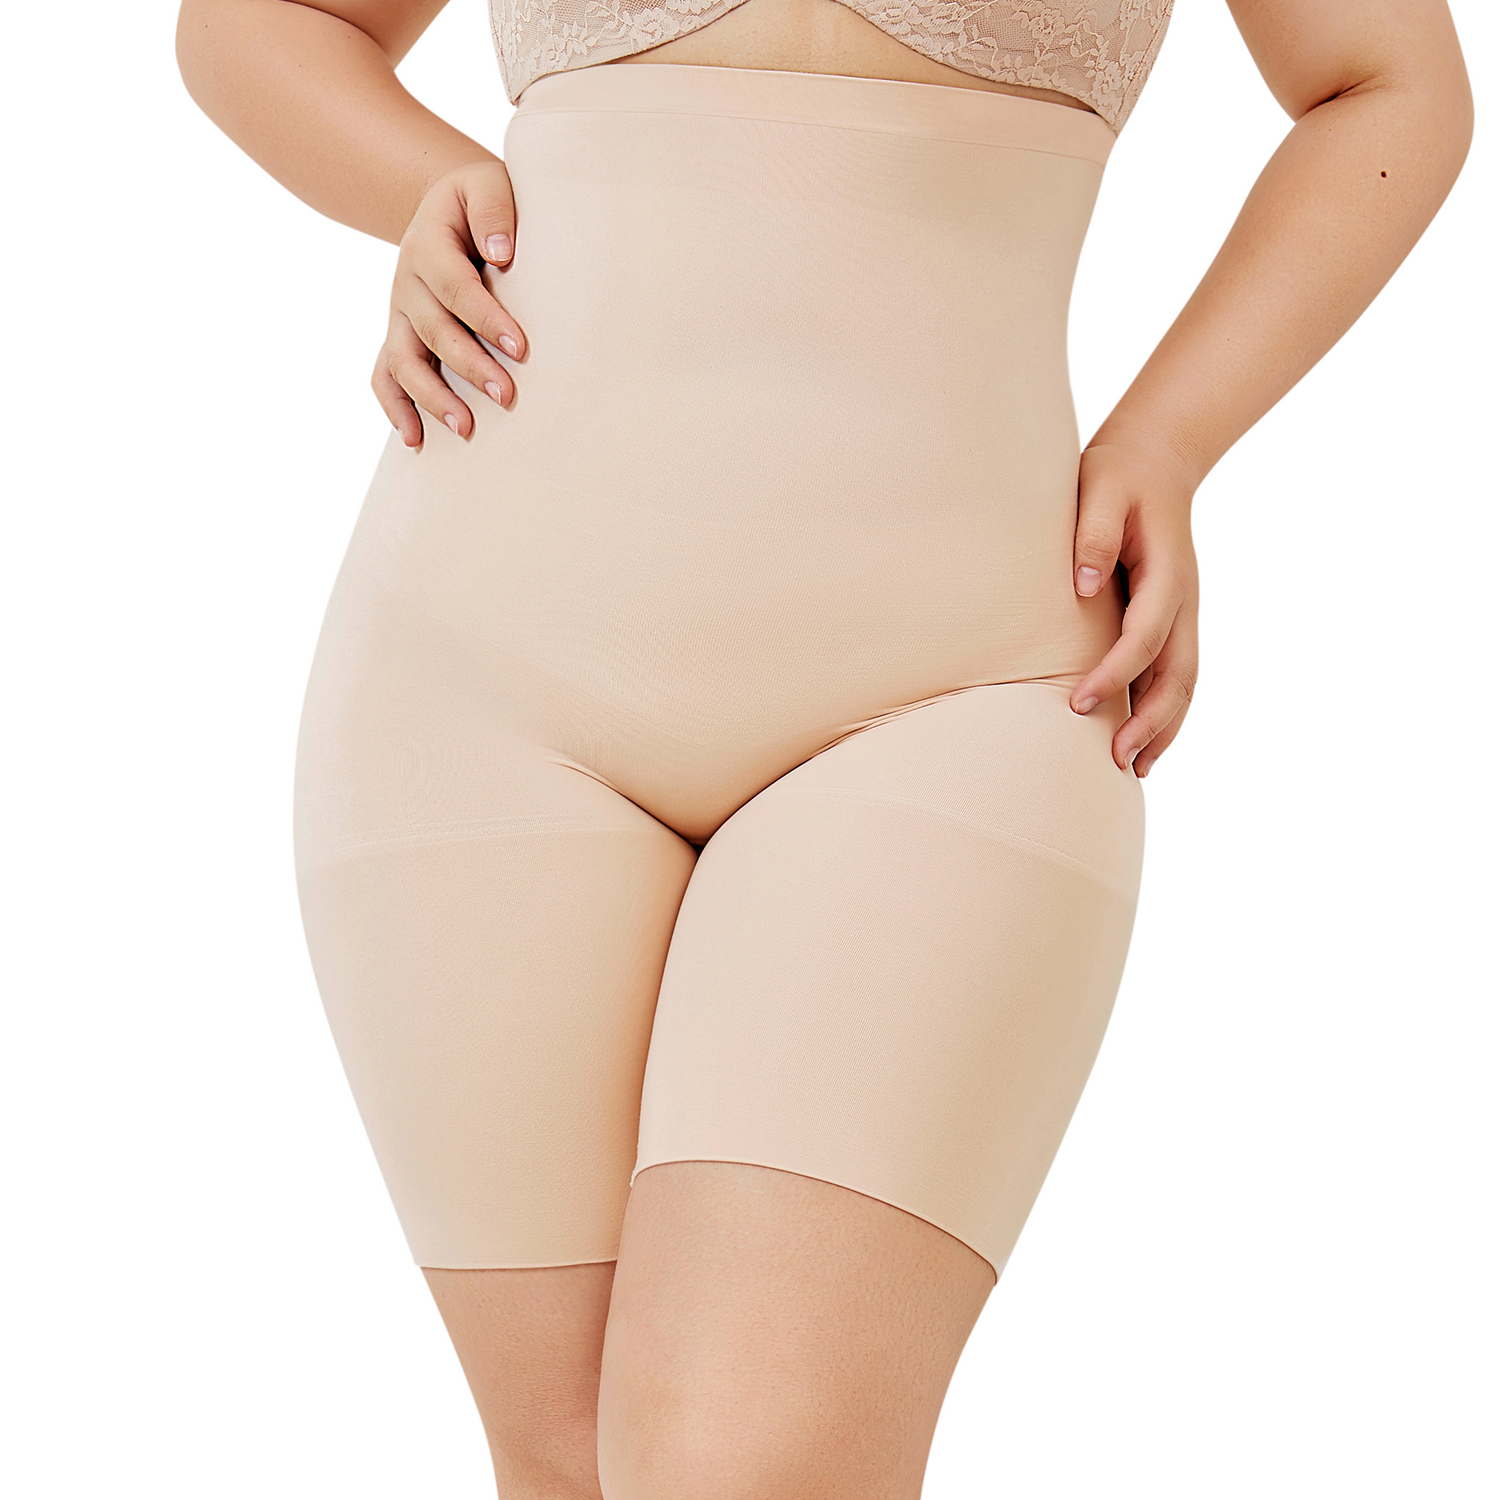 570b1739df Detail Feedback Questions about Women s Plus Size High Waist Seamless  Control Panties Shapewear Thigh Slimmer on Aliexpress.com